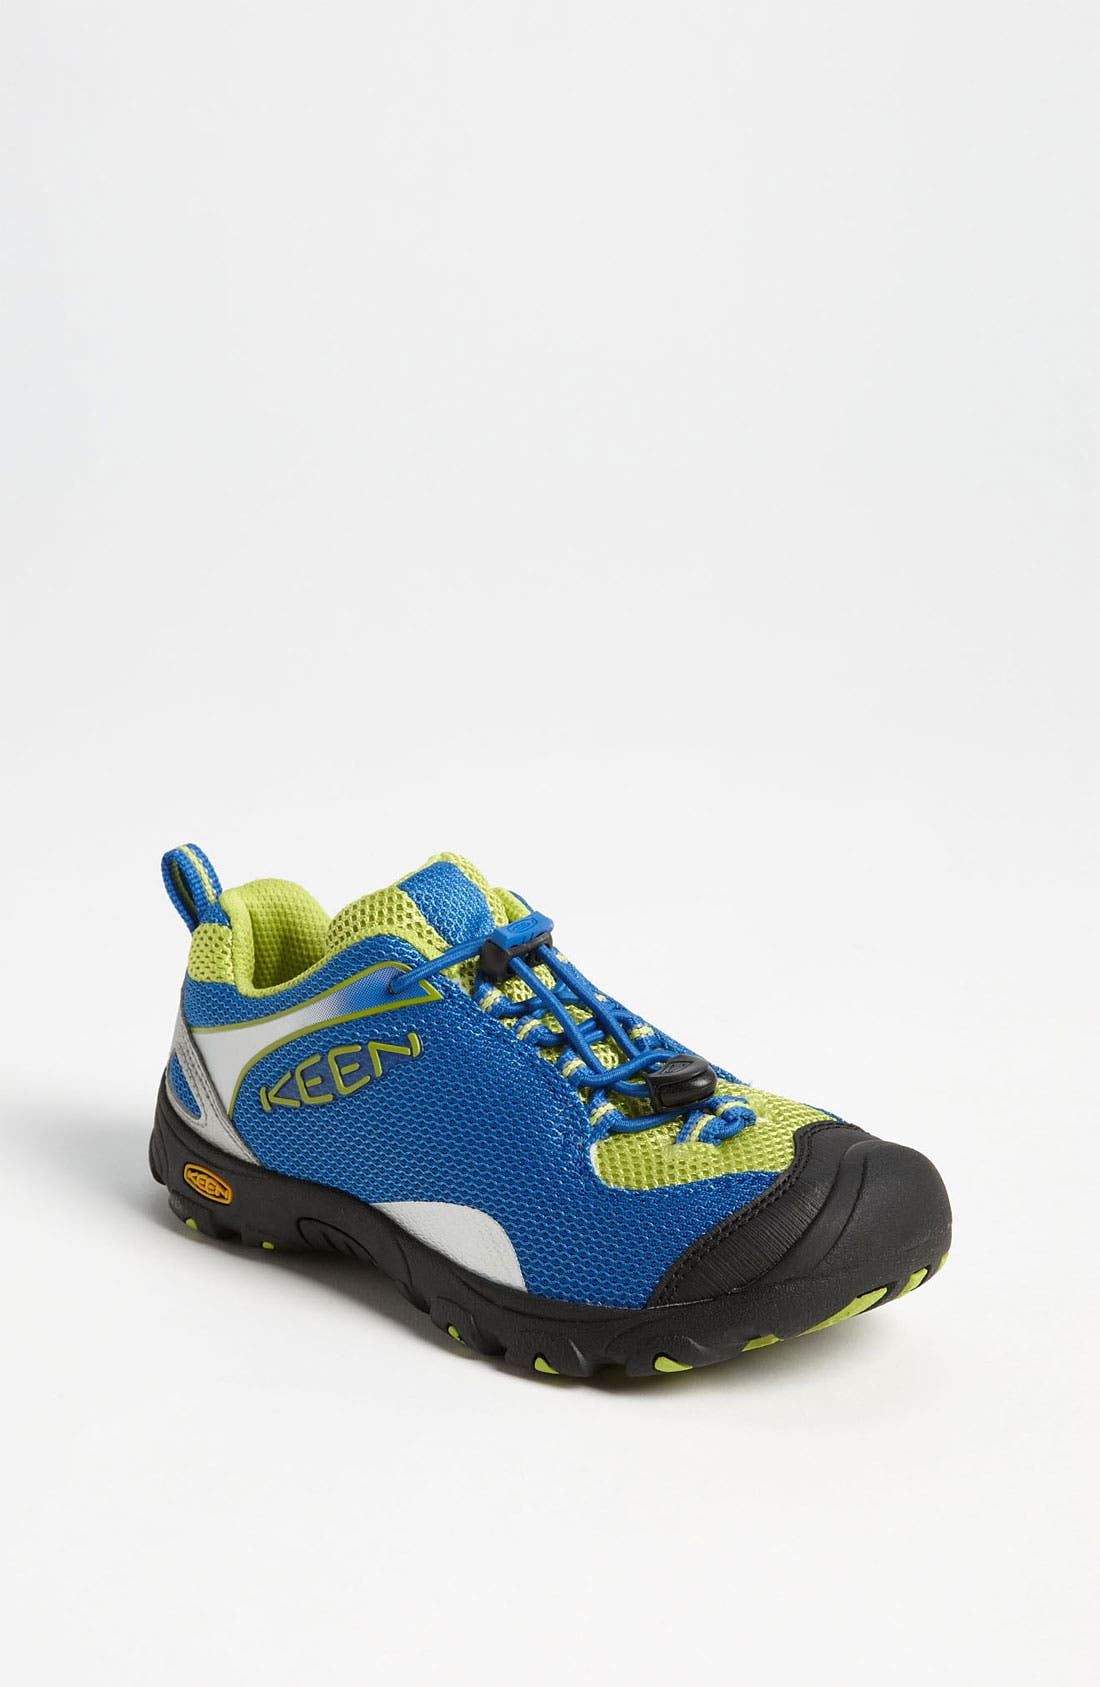 Alternate Image 1 Selected - Keen 'Jamison' Sneaker (Toddler, Little Kid & Big Kid)